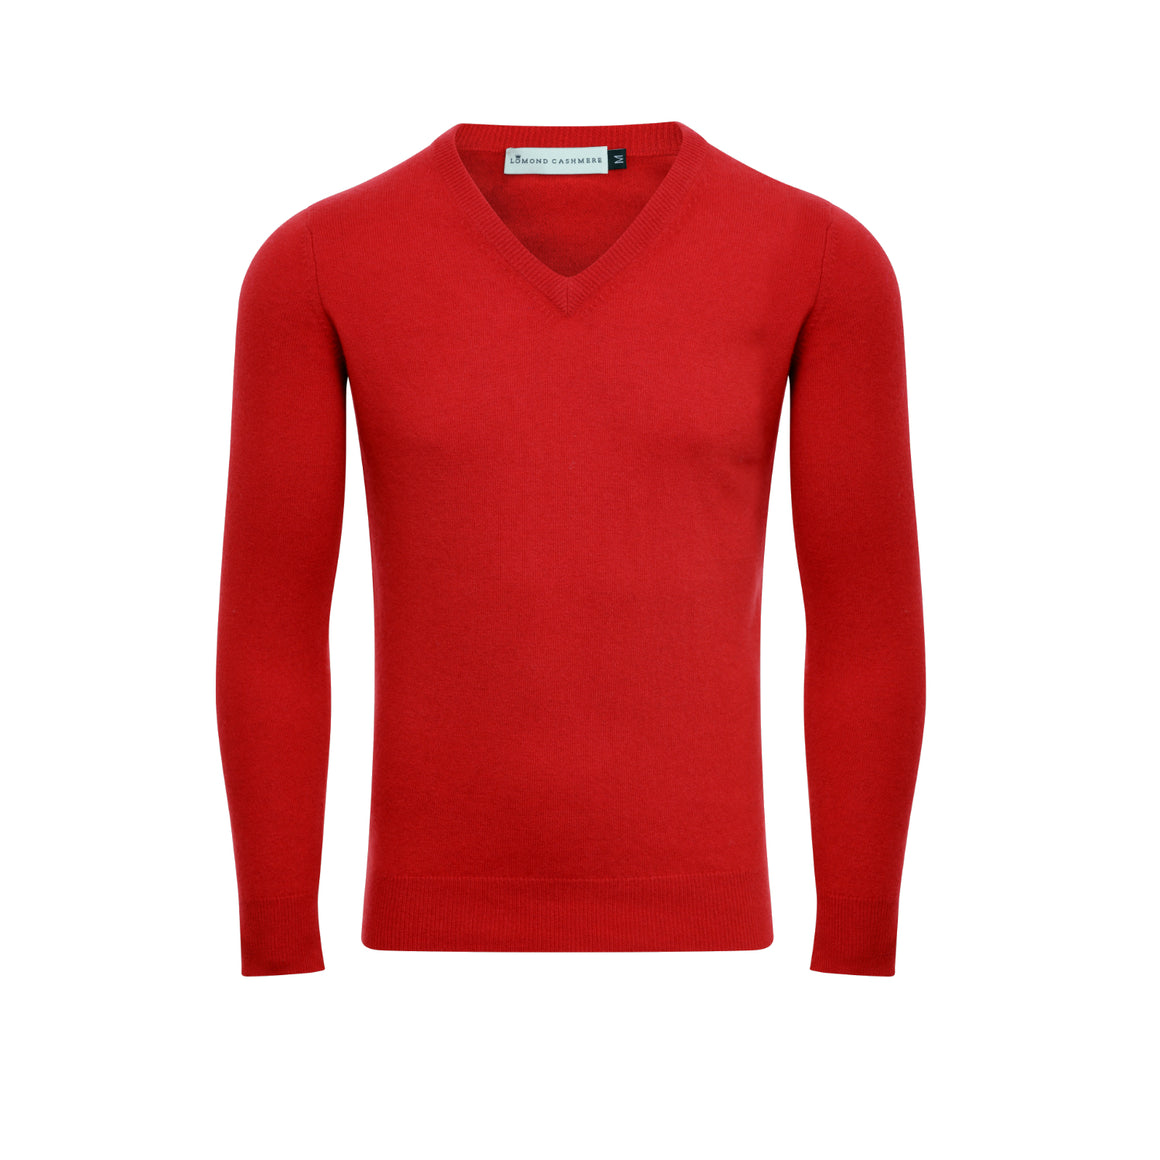 Lomond - Mens Fitted Cashmere V Neck Sweater